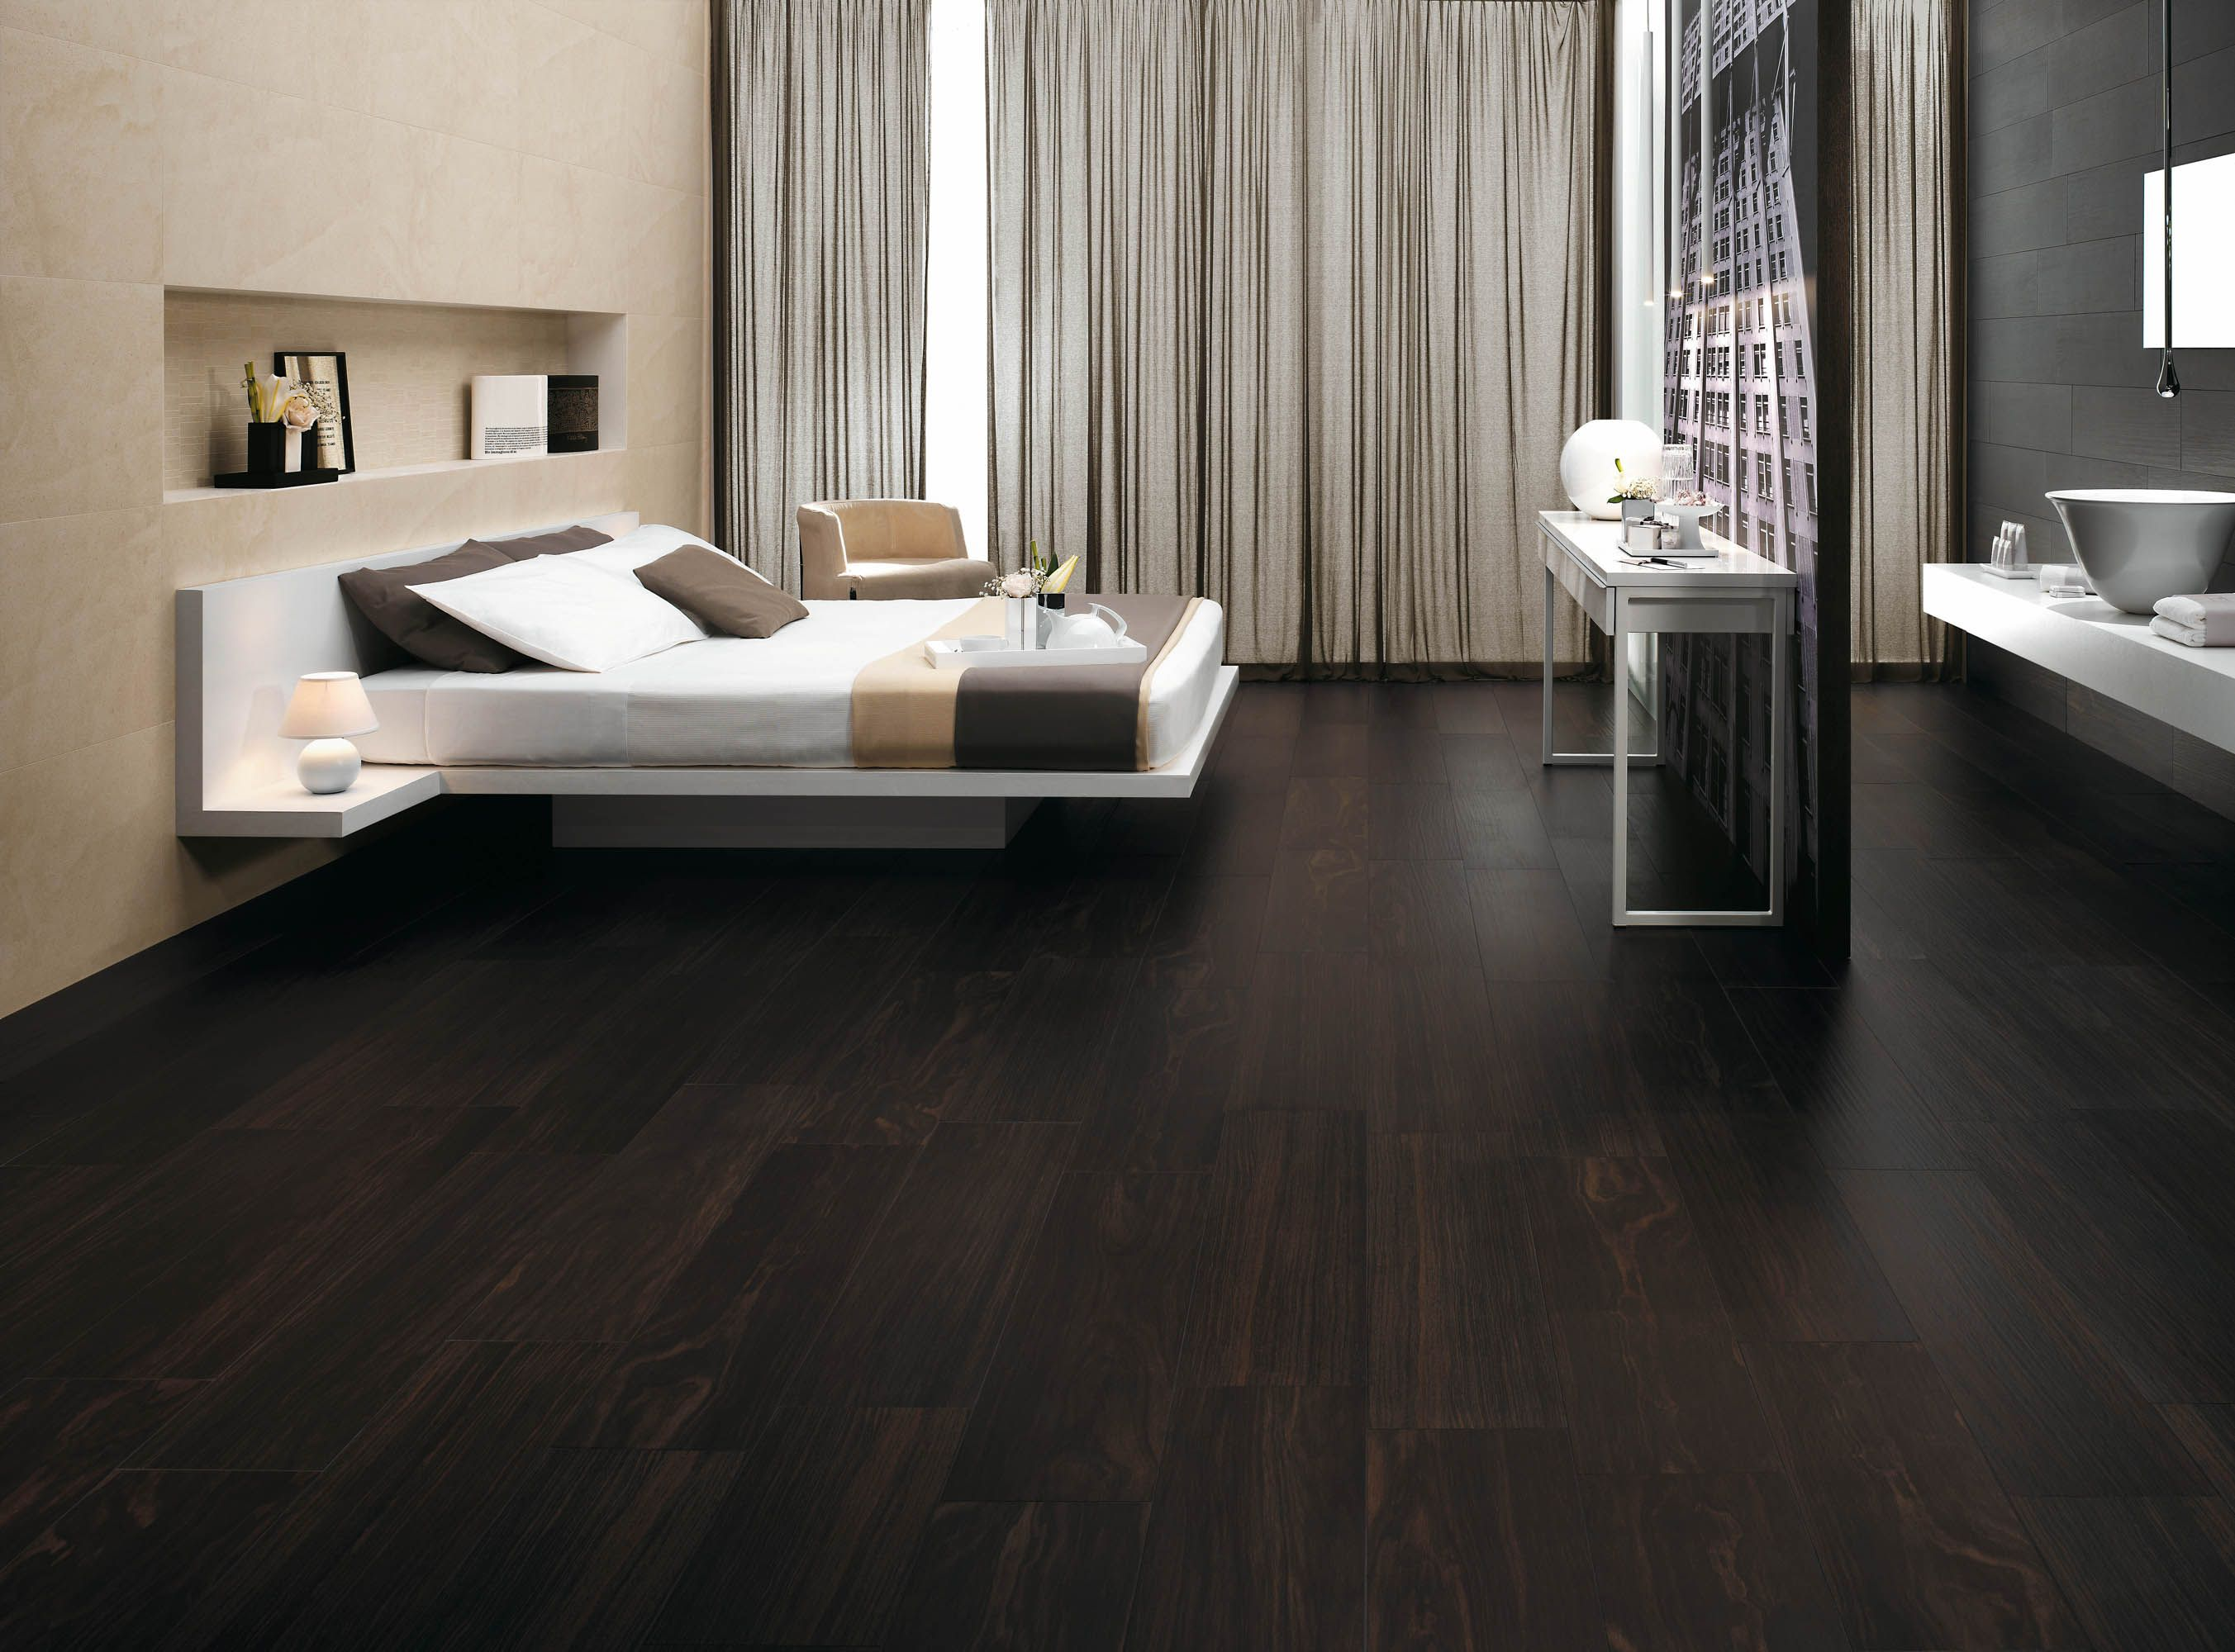 Minoli tiles etic a wood look floor with all the for Bedroom flooring ideas